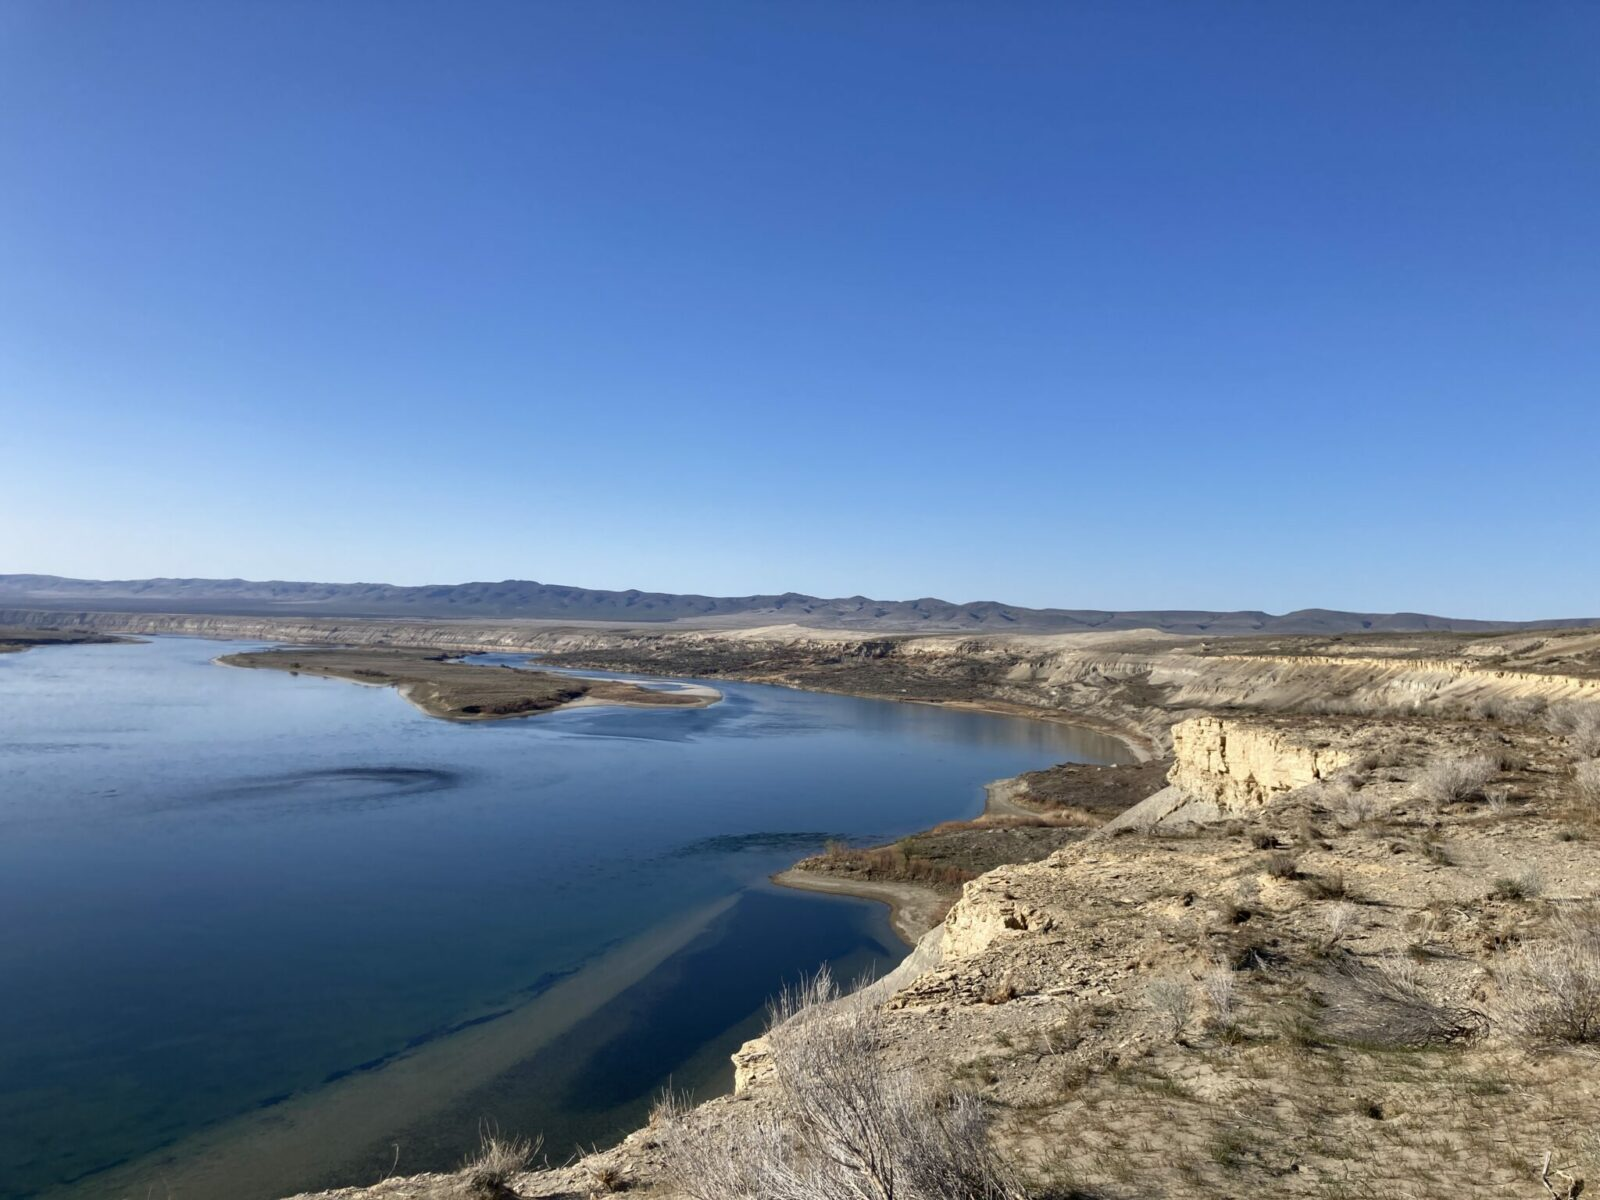 Hanford Reach is a section of the Columbia River in Eastern Washington. The river and an island in it are seen from the bluffs above, surrounded by bluffs and distant mountains on a sunny day